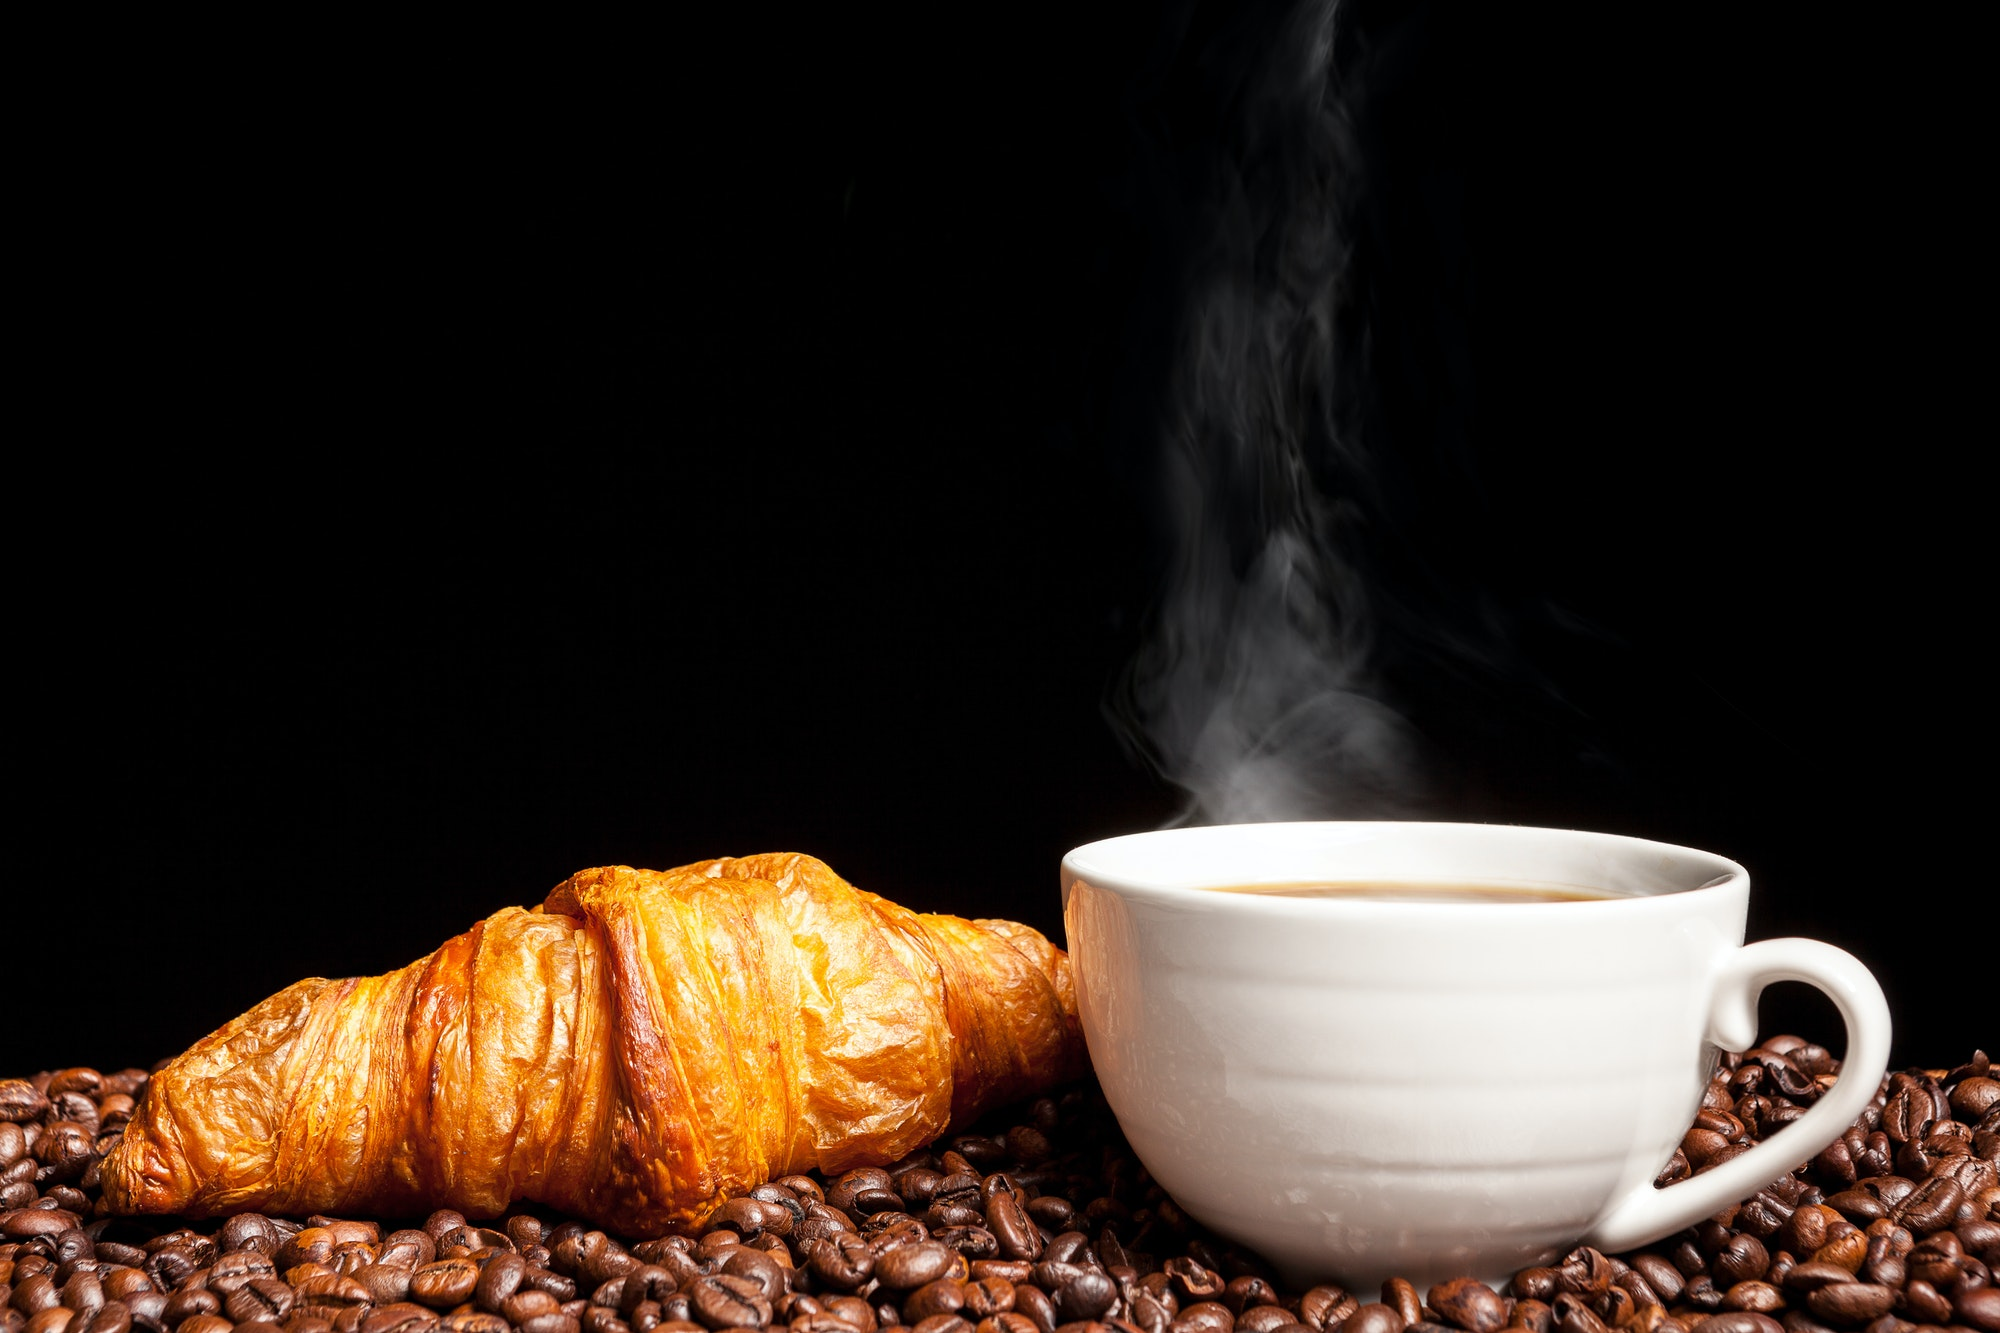 Croissant and steaming coffee beans in close up